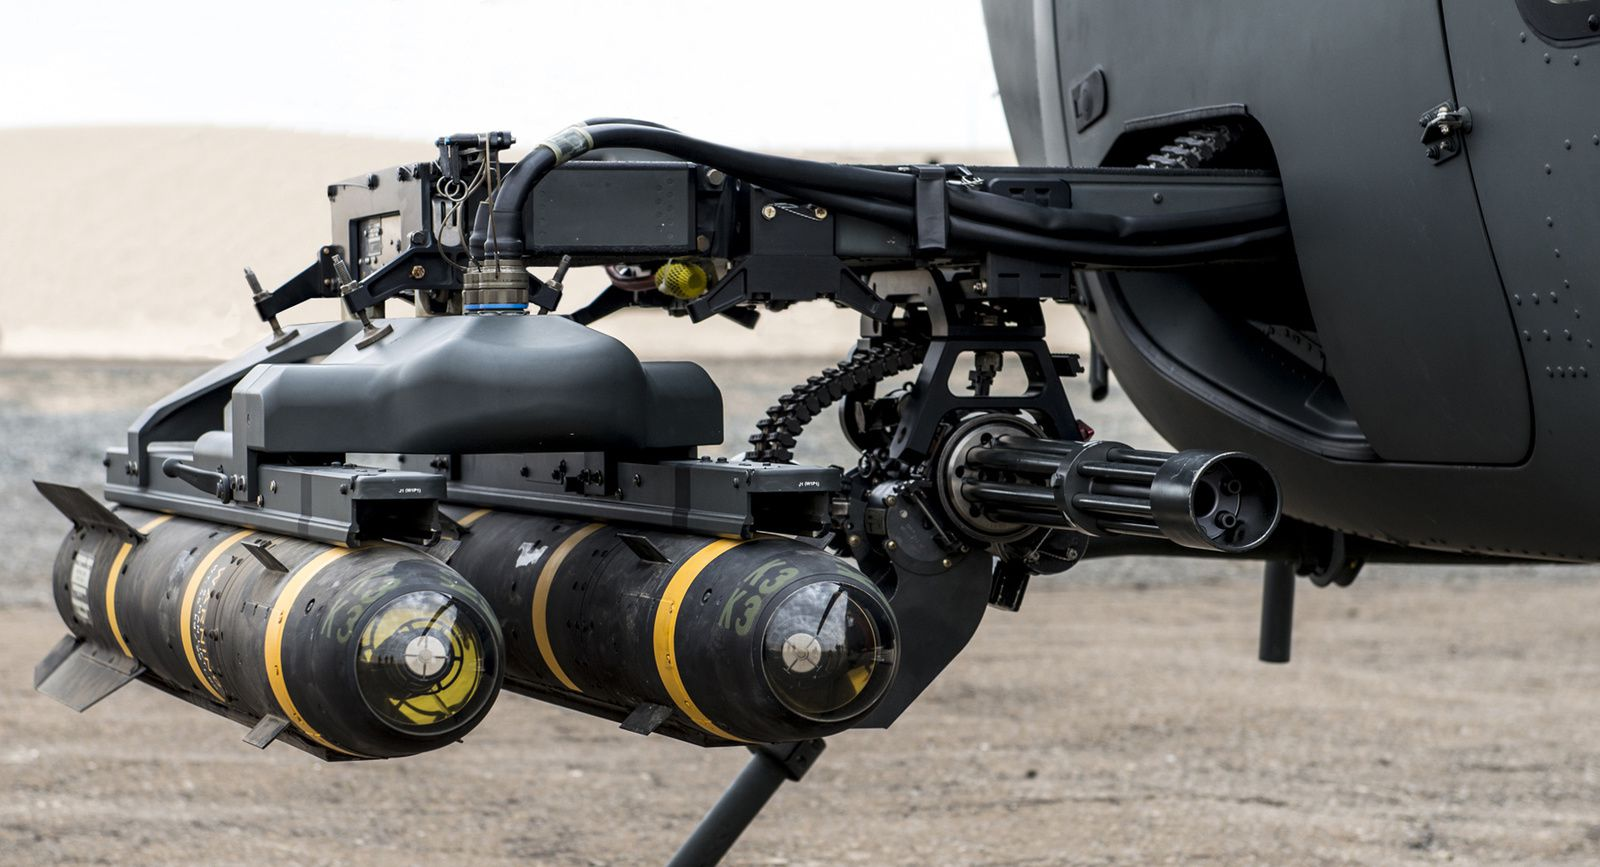 NorthStar Turns Commercial Helo into Gunship